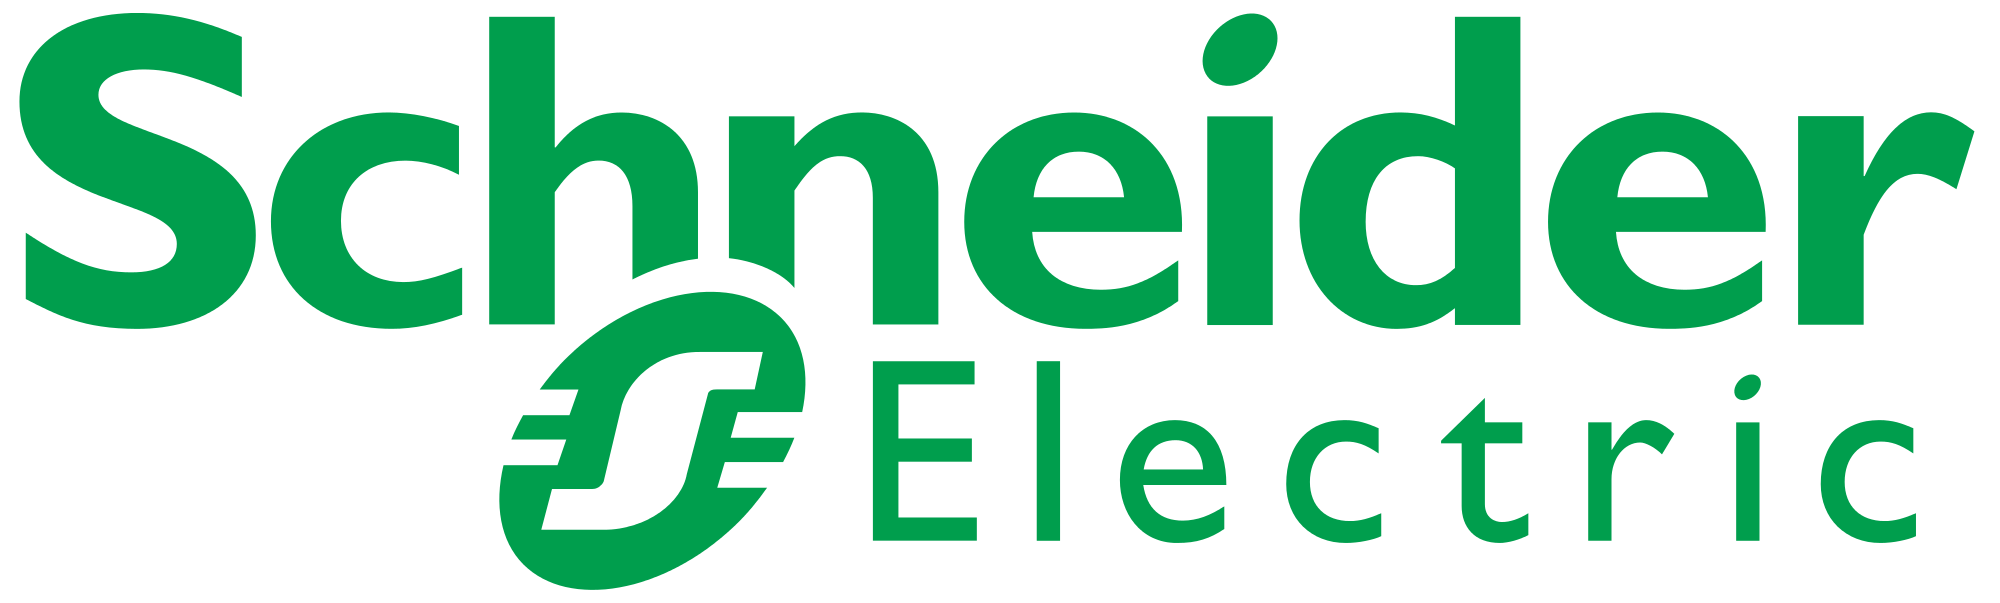 Schneider Electric - Complete Event